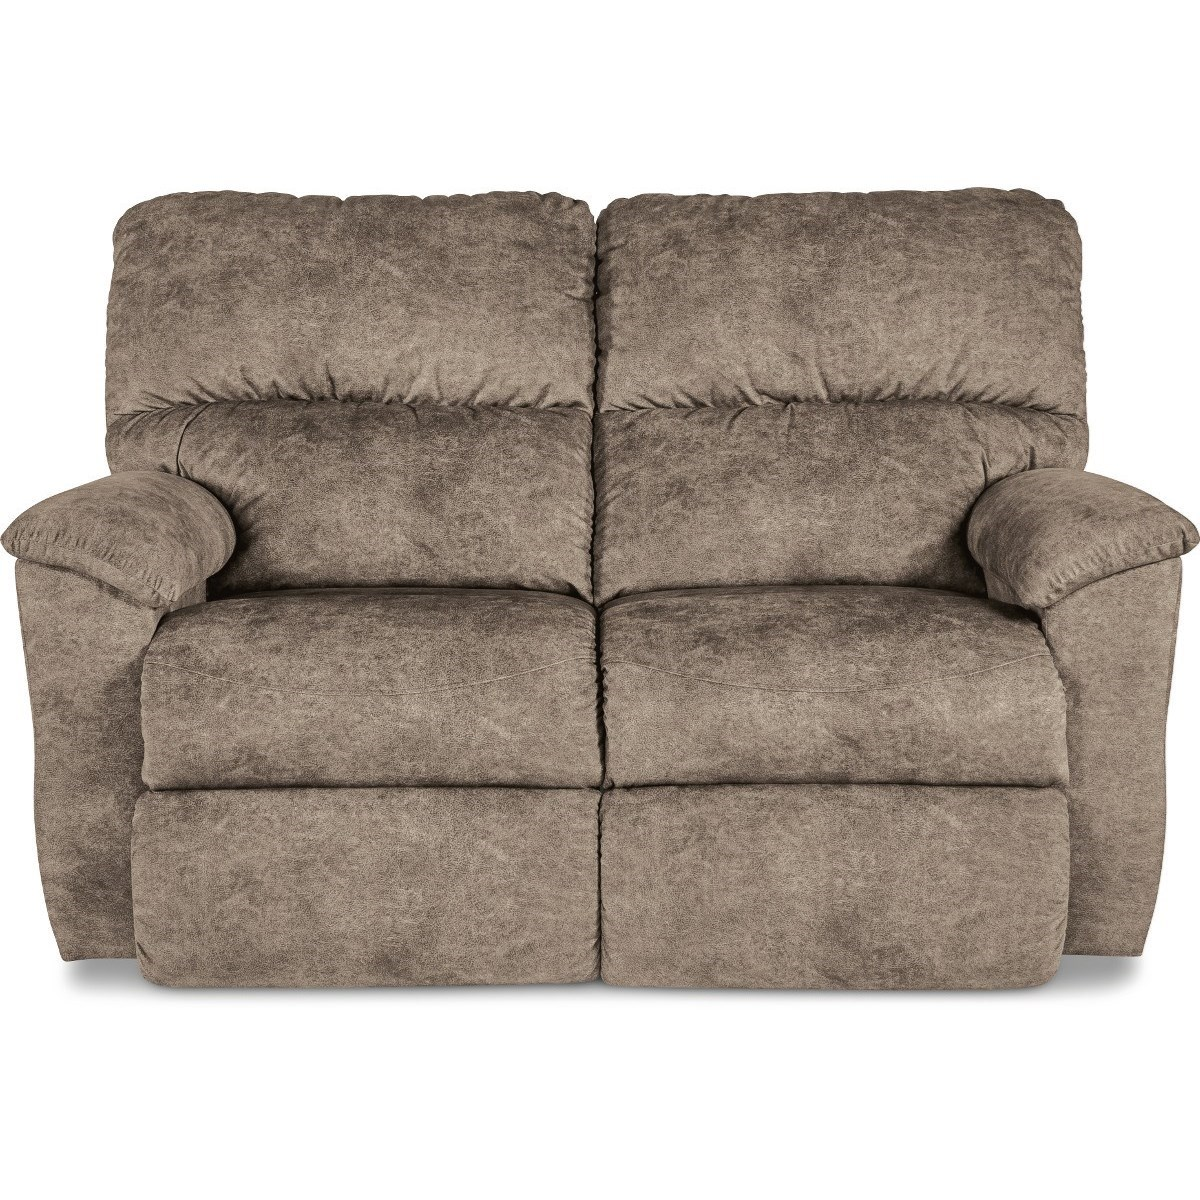 Brooks Power Reclining Loveseat by La-Z-Boy at Sparks HomeStore